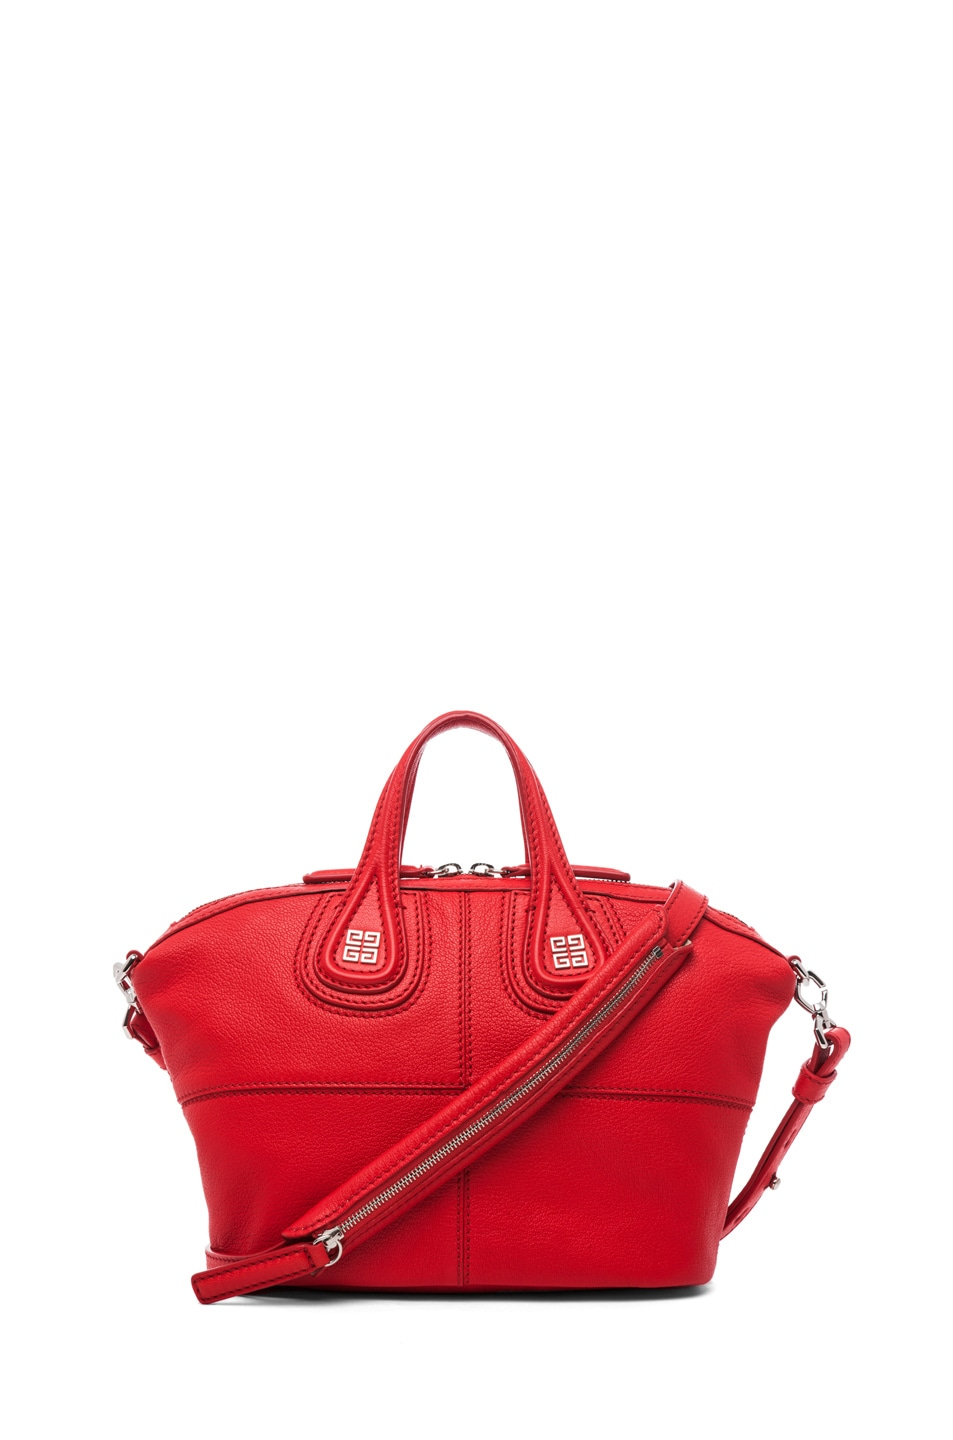 Image 1 of GIVENCHY Micro Nightingale in Red